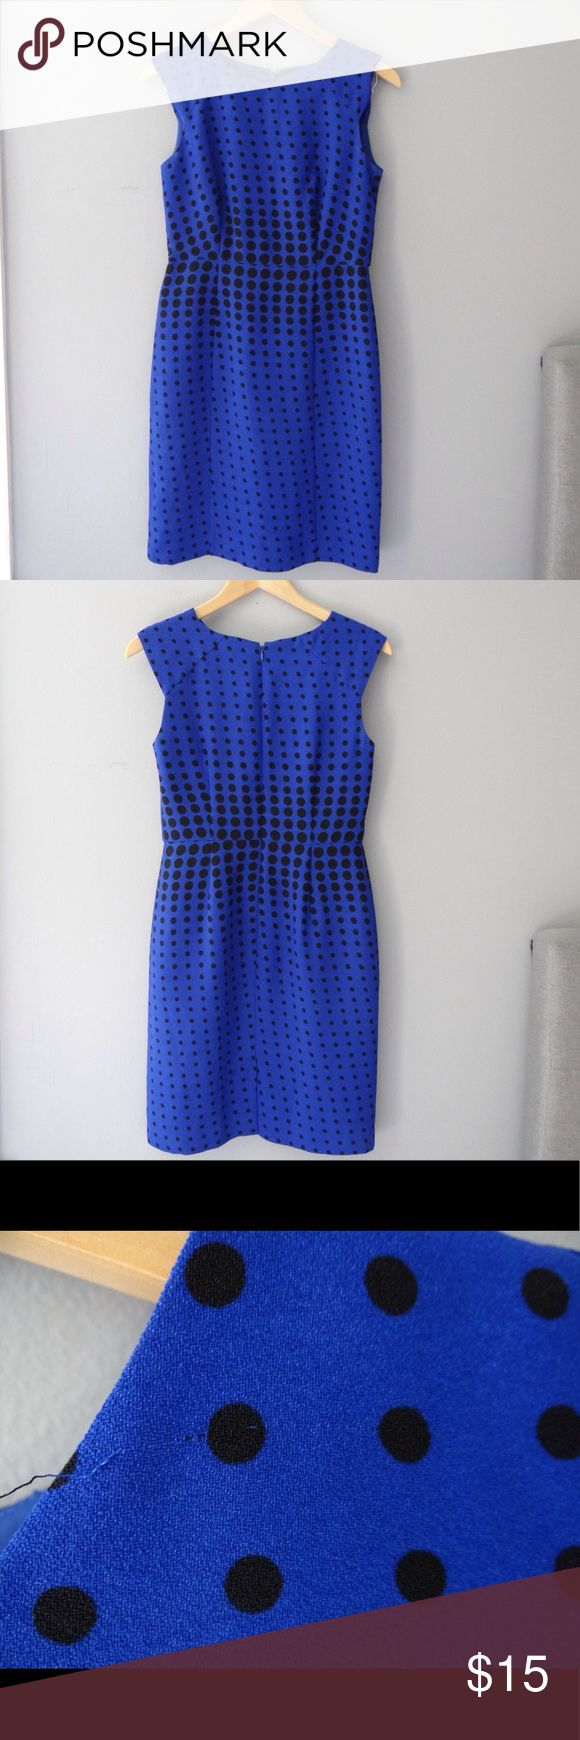 Ann Taylor factory sleeveless dress Pre loved Ann Taylor factory linned sleeveless dress. Ann Taylor Factory Dresses